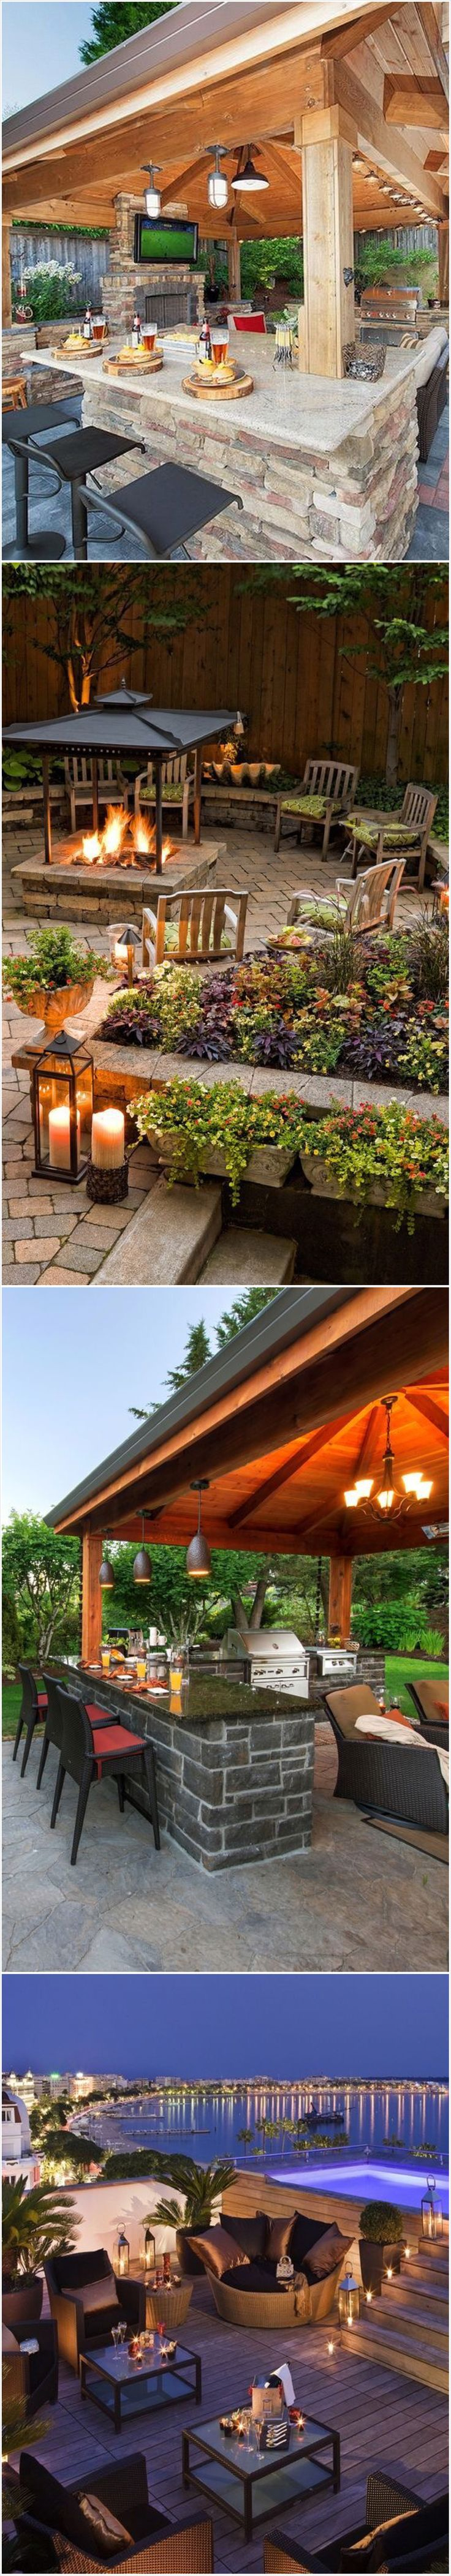 The roof lines need to extend out over (and past) the seats at the bars! [Amazing Outdoor Living Spaces]